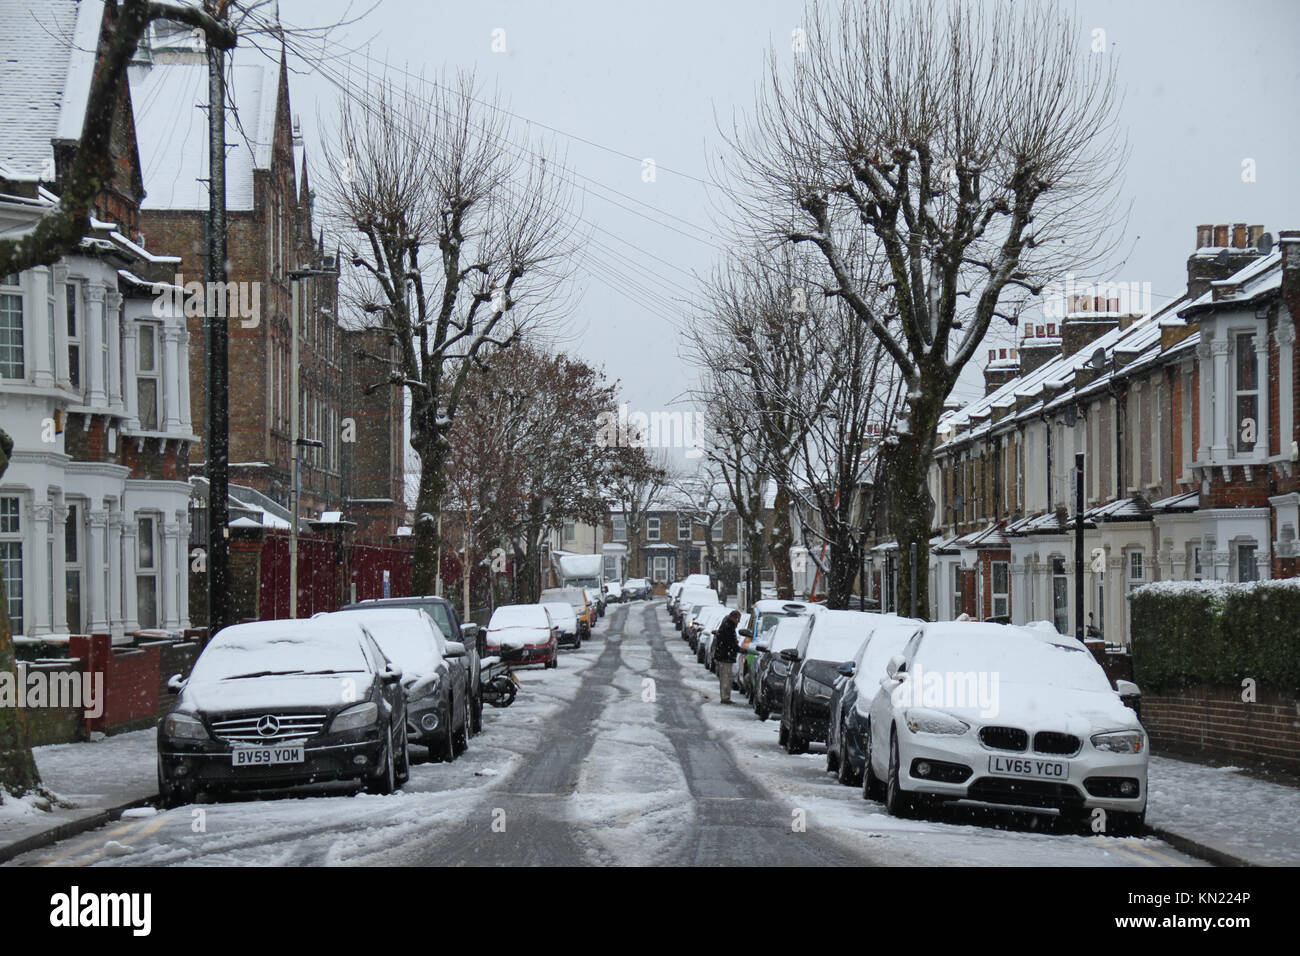 LONDON, UK - DECEMBER 10: Sandringham Road in East London covered with snow from a shower that began at around 3 - Stock Image